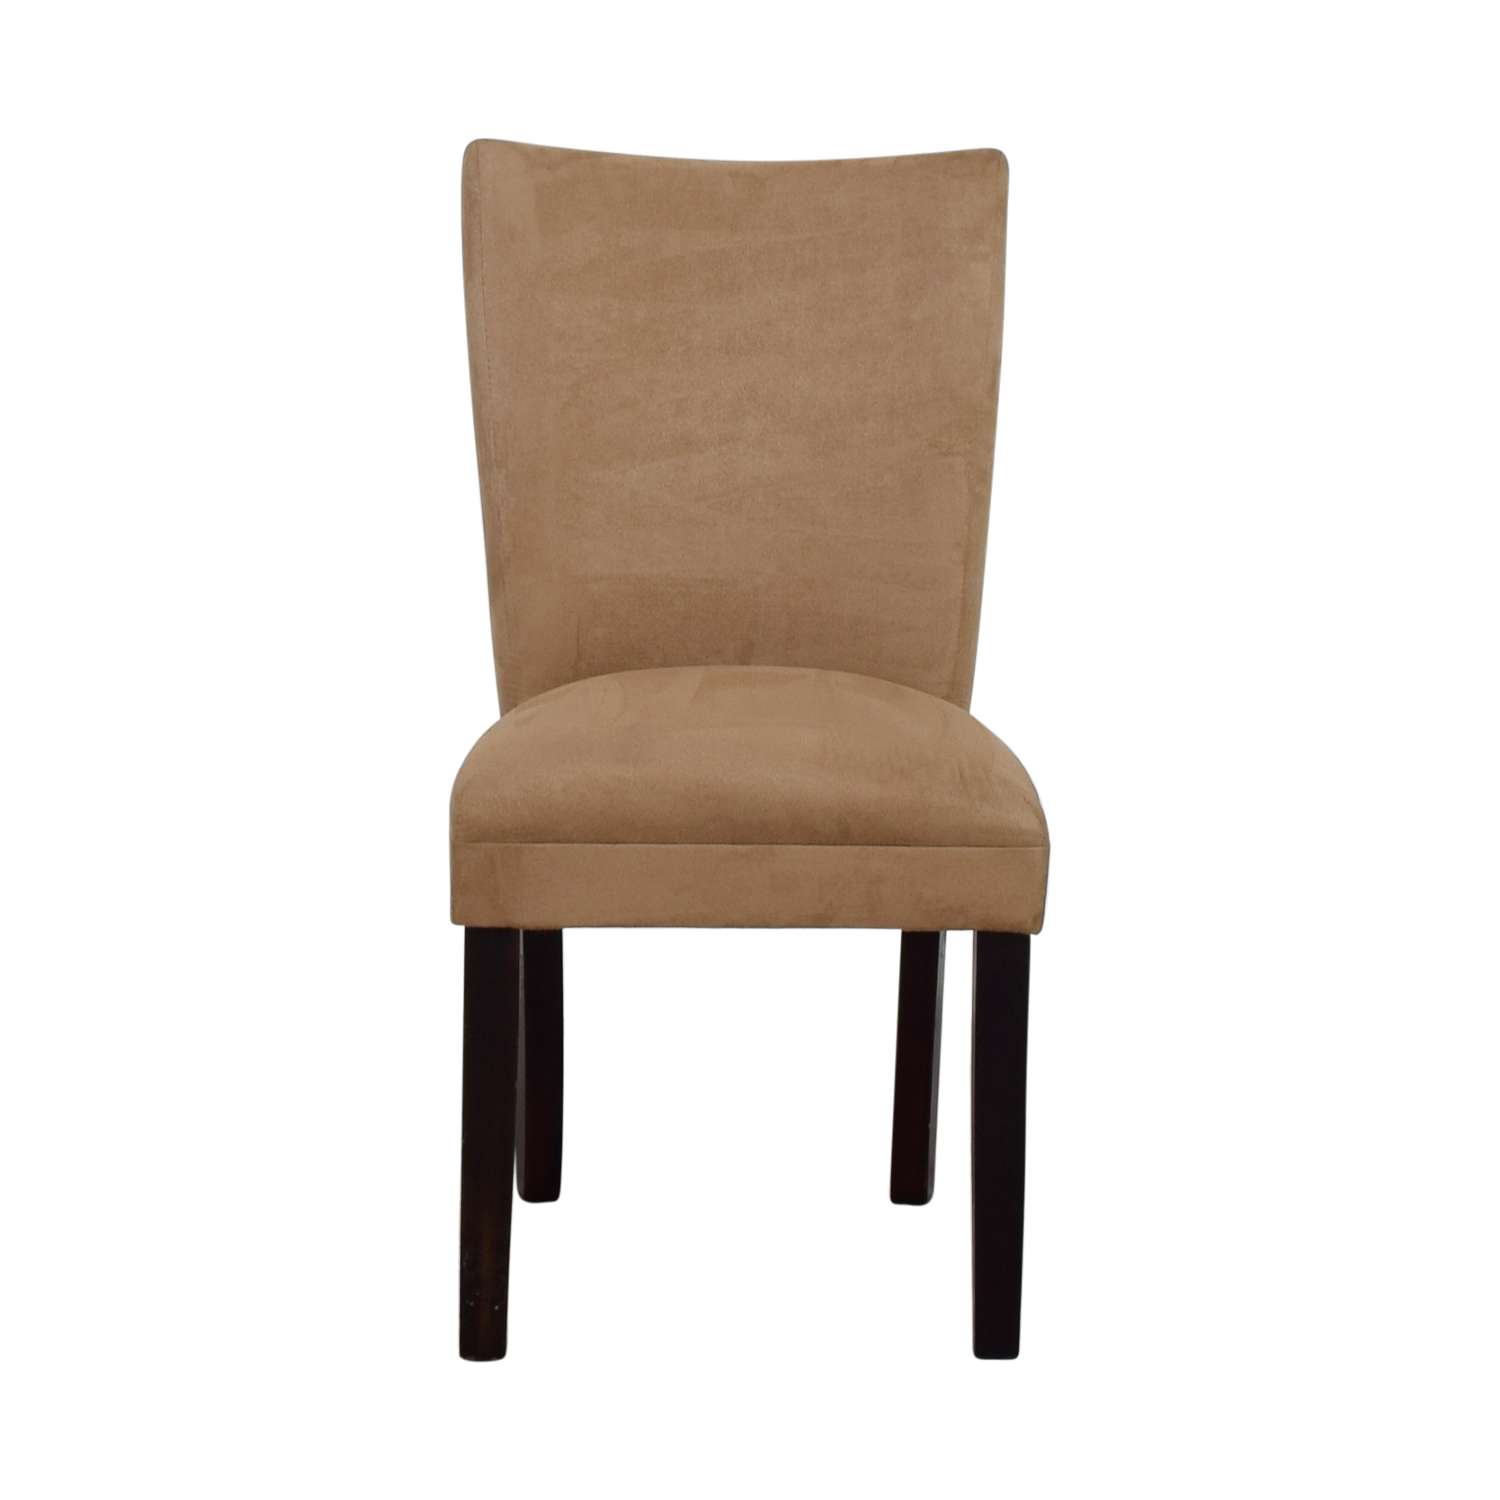 Coaster Furniture Parsons Taupe Microfiber Fabric Chair for sale